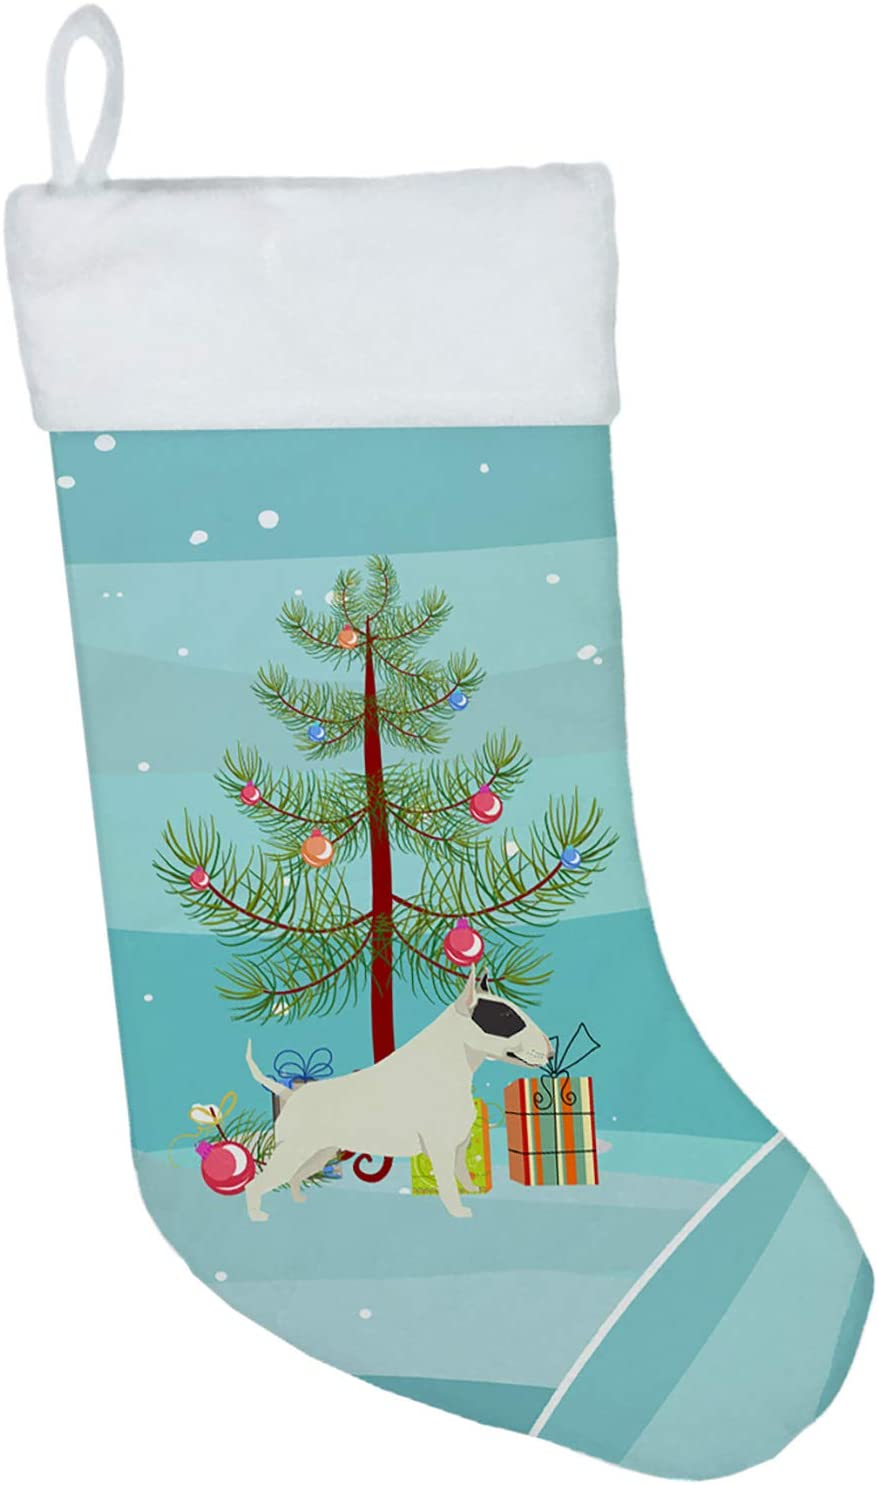 Carolines Treasures Black and White Bull Terrier Tree Christmas-Stockings, Multicolor